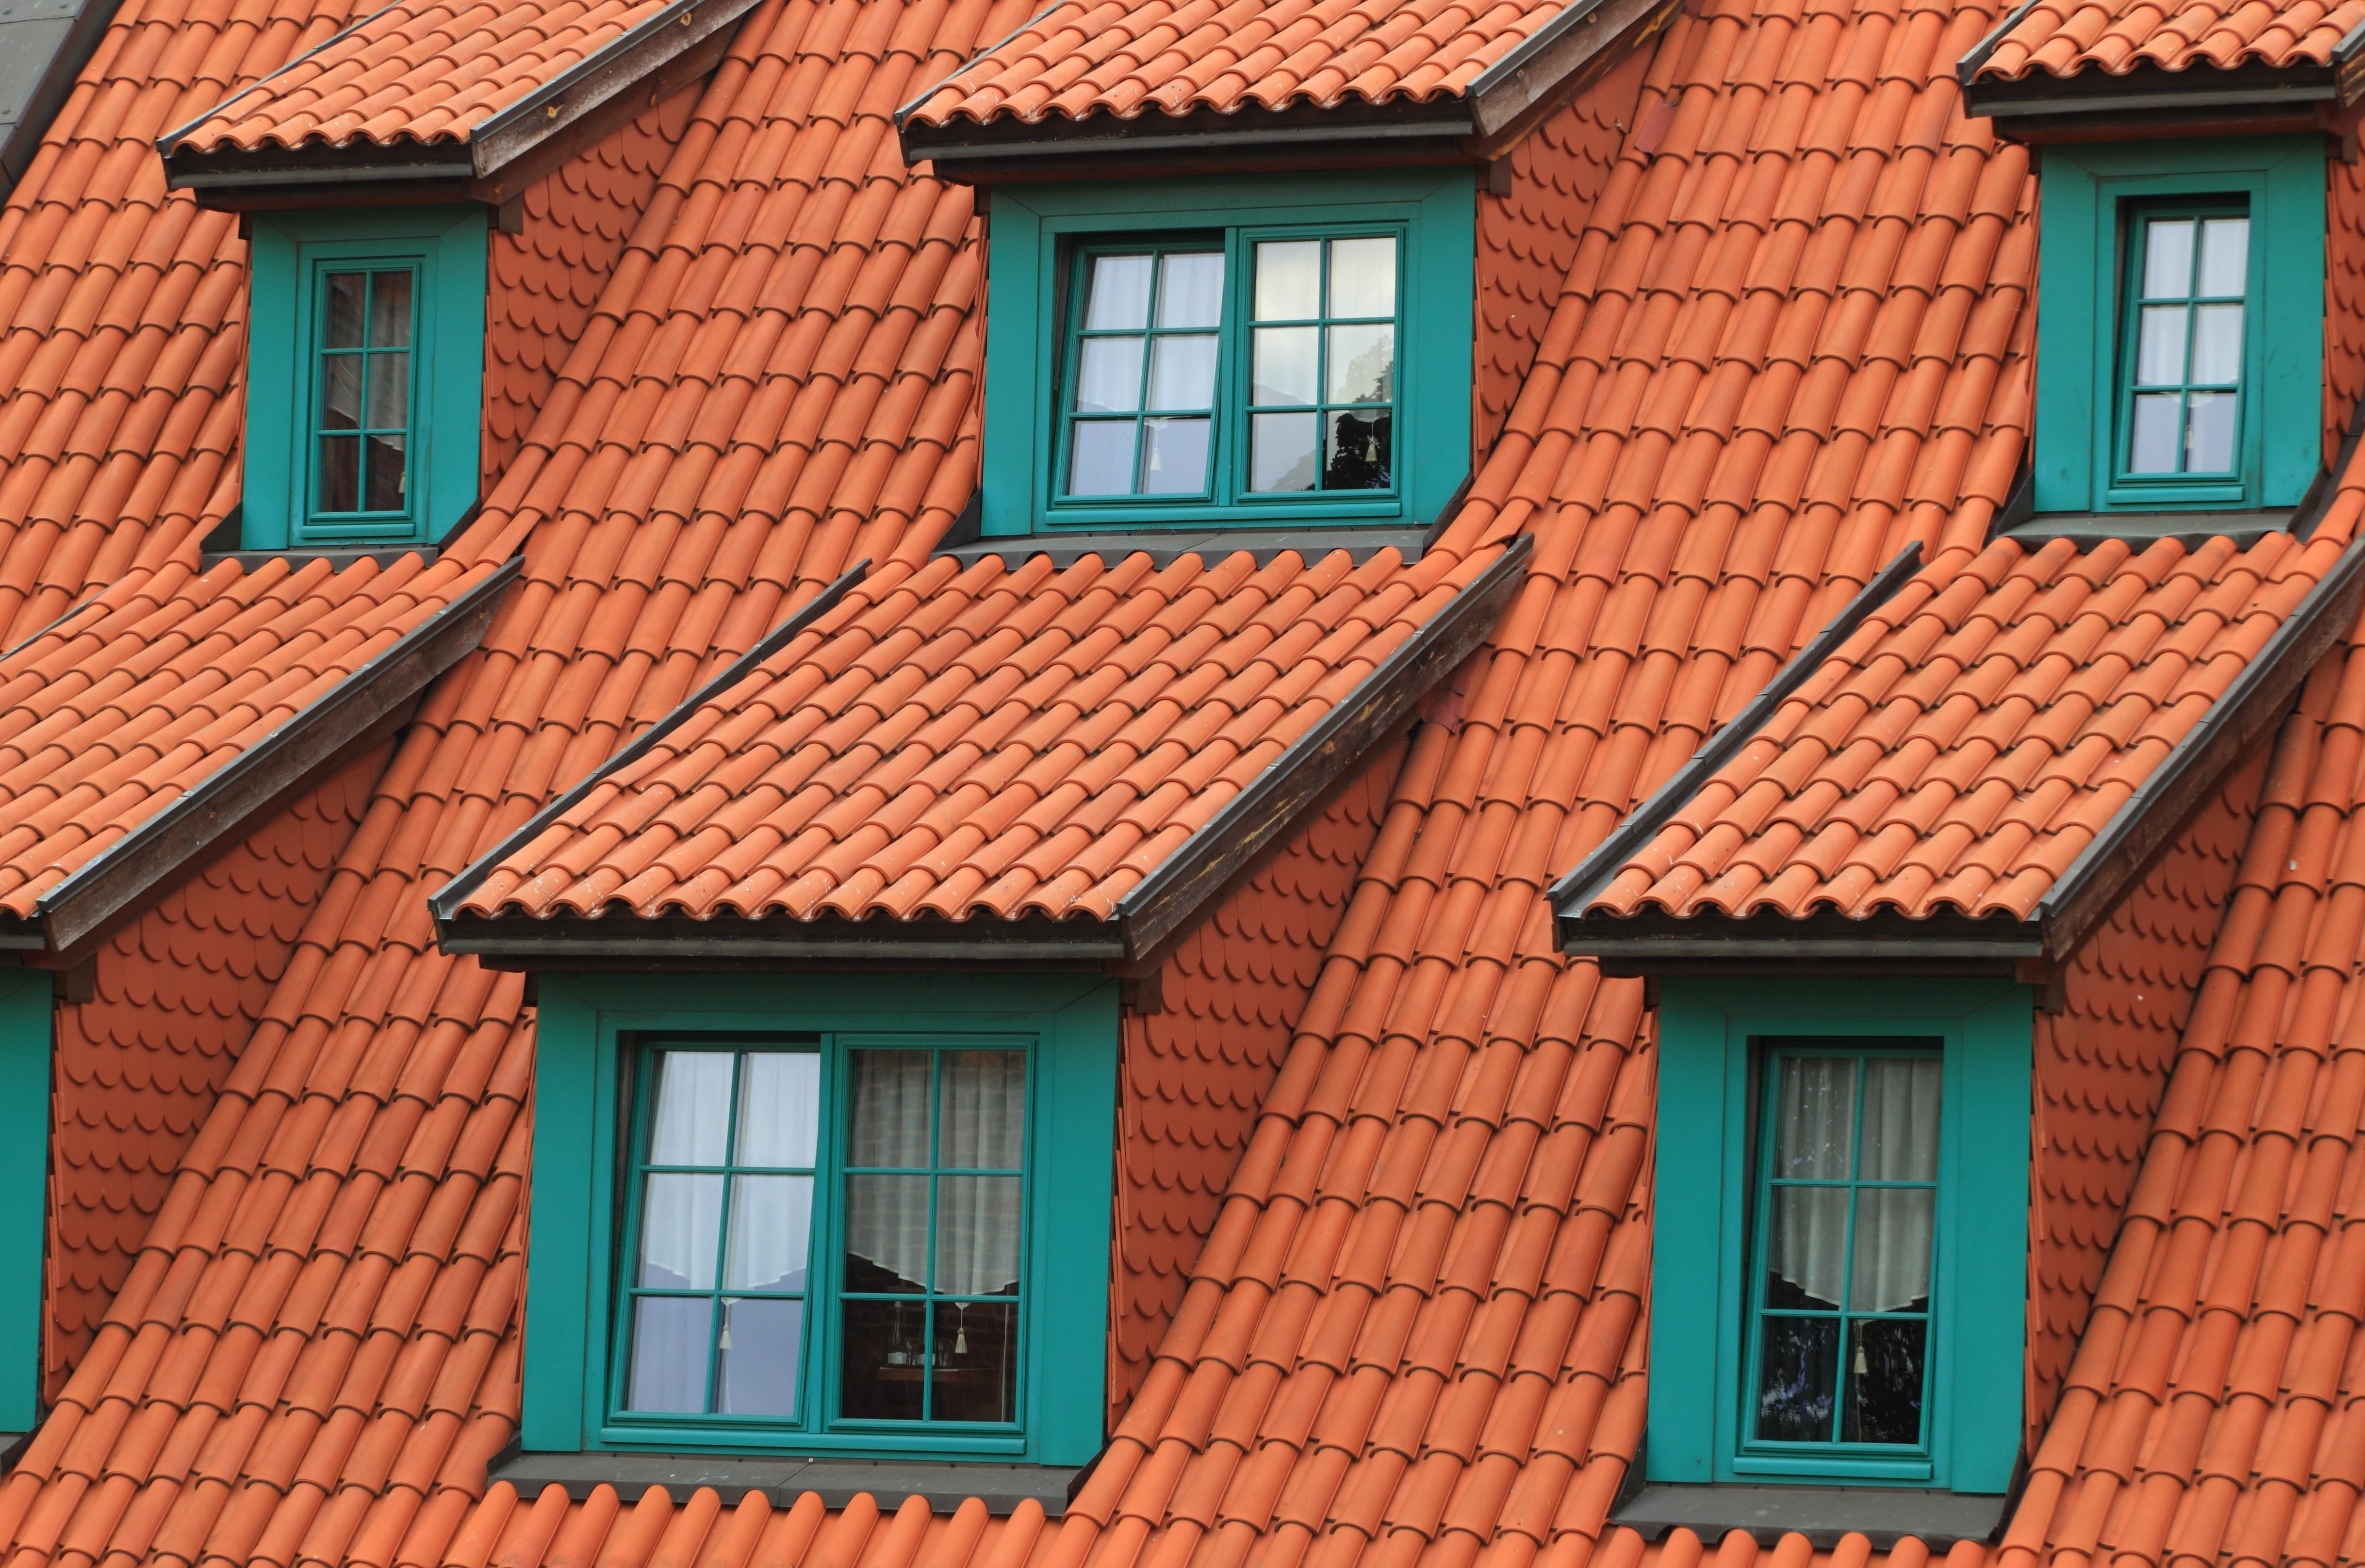 Orange rooftops with windows framed in green.